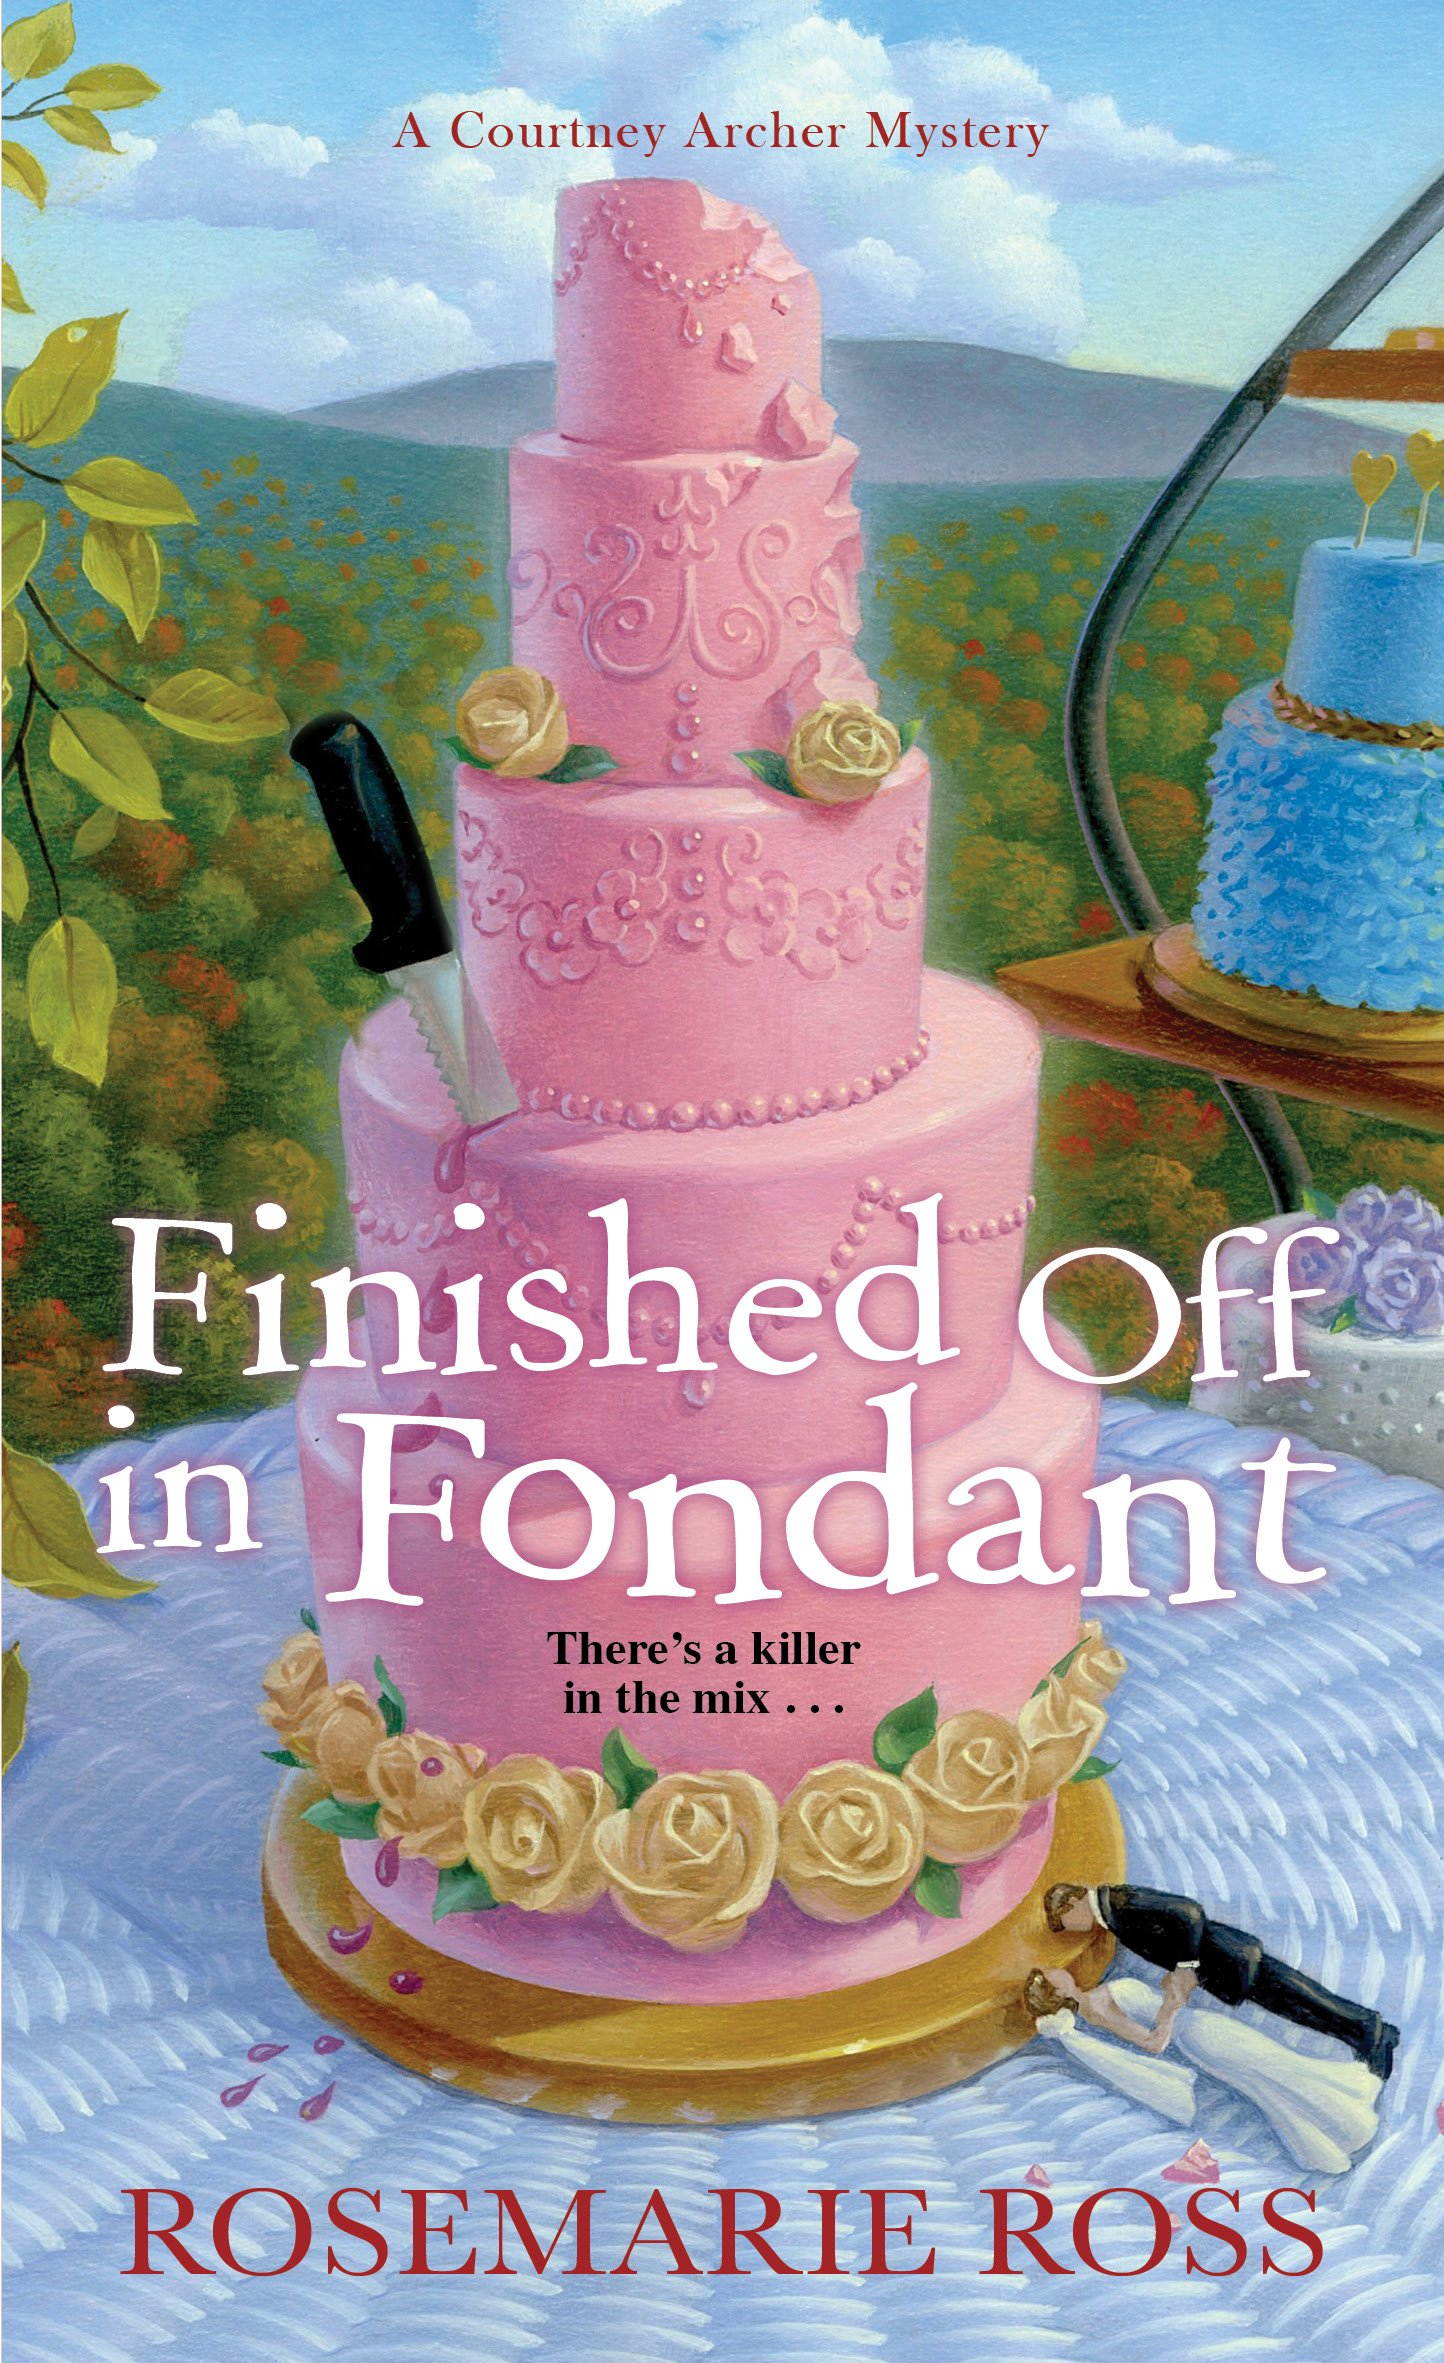 Finished Off in Fondant ~ A Courntey Archer Mystery by Rosemarie Ross